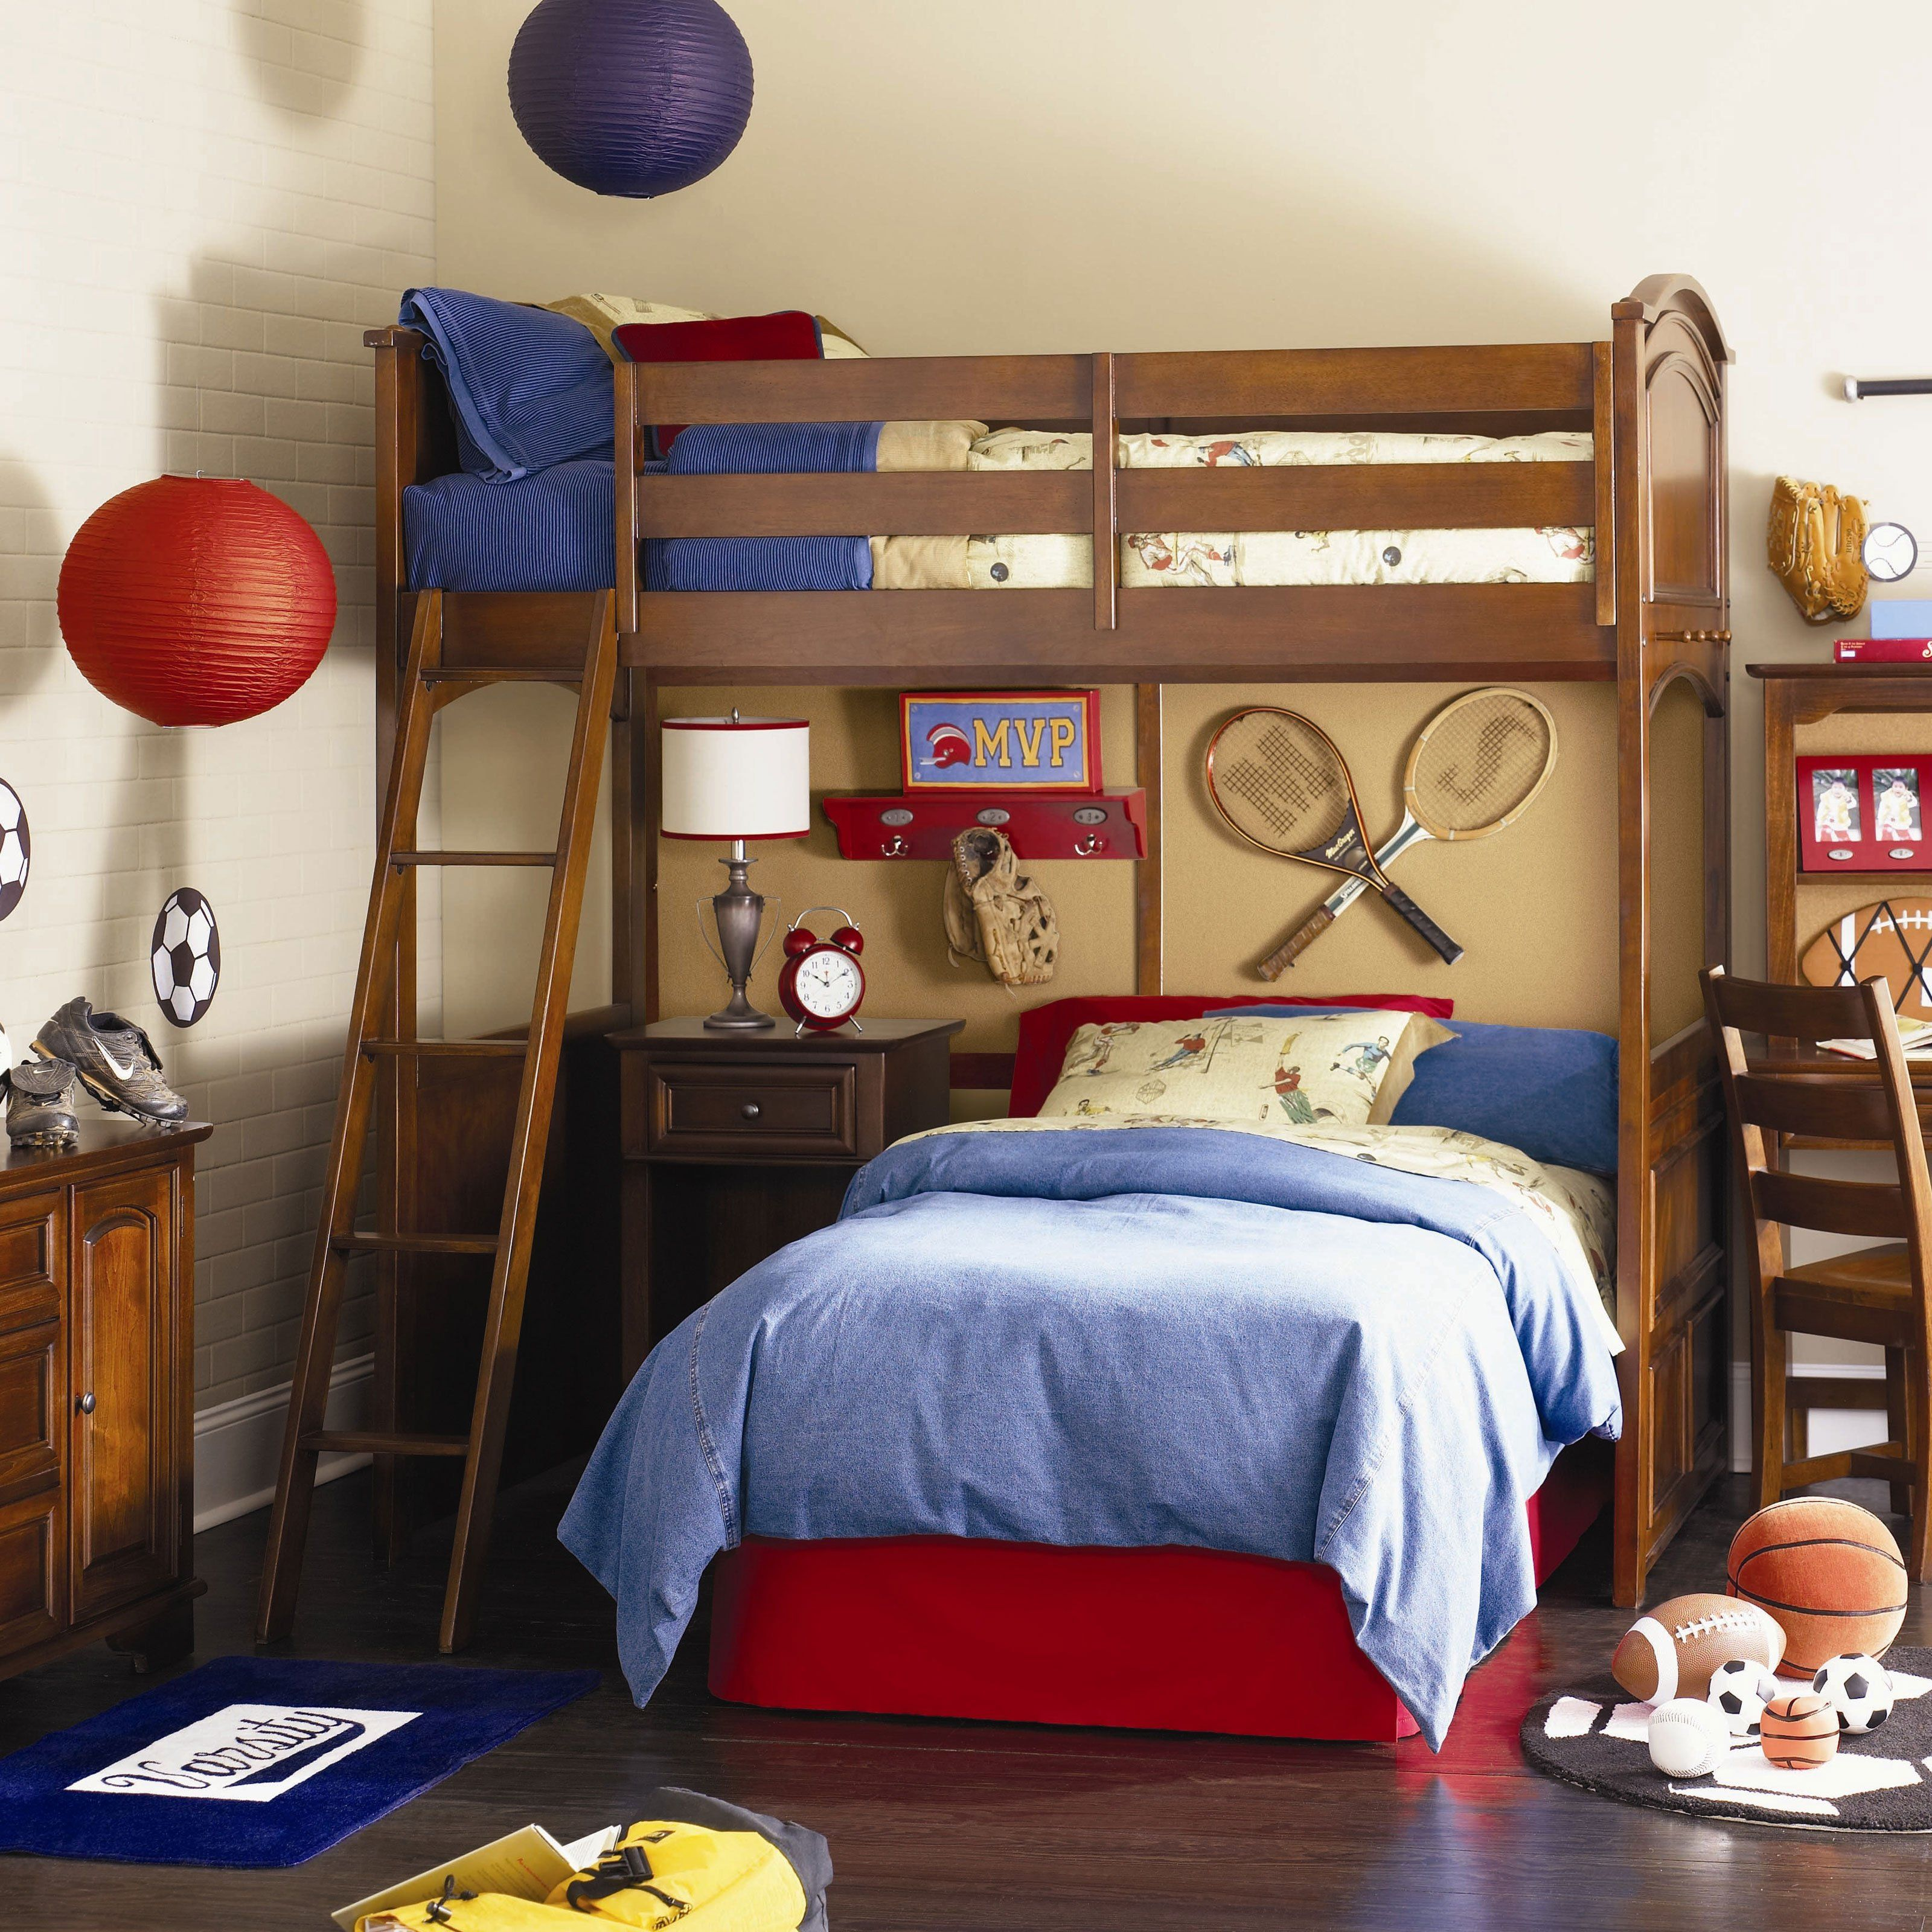 (Just what I was looking for!) Deer Run Loft Bed with